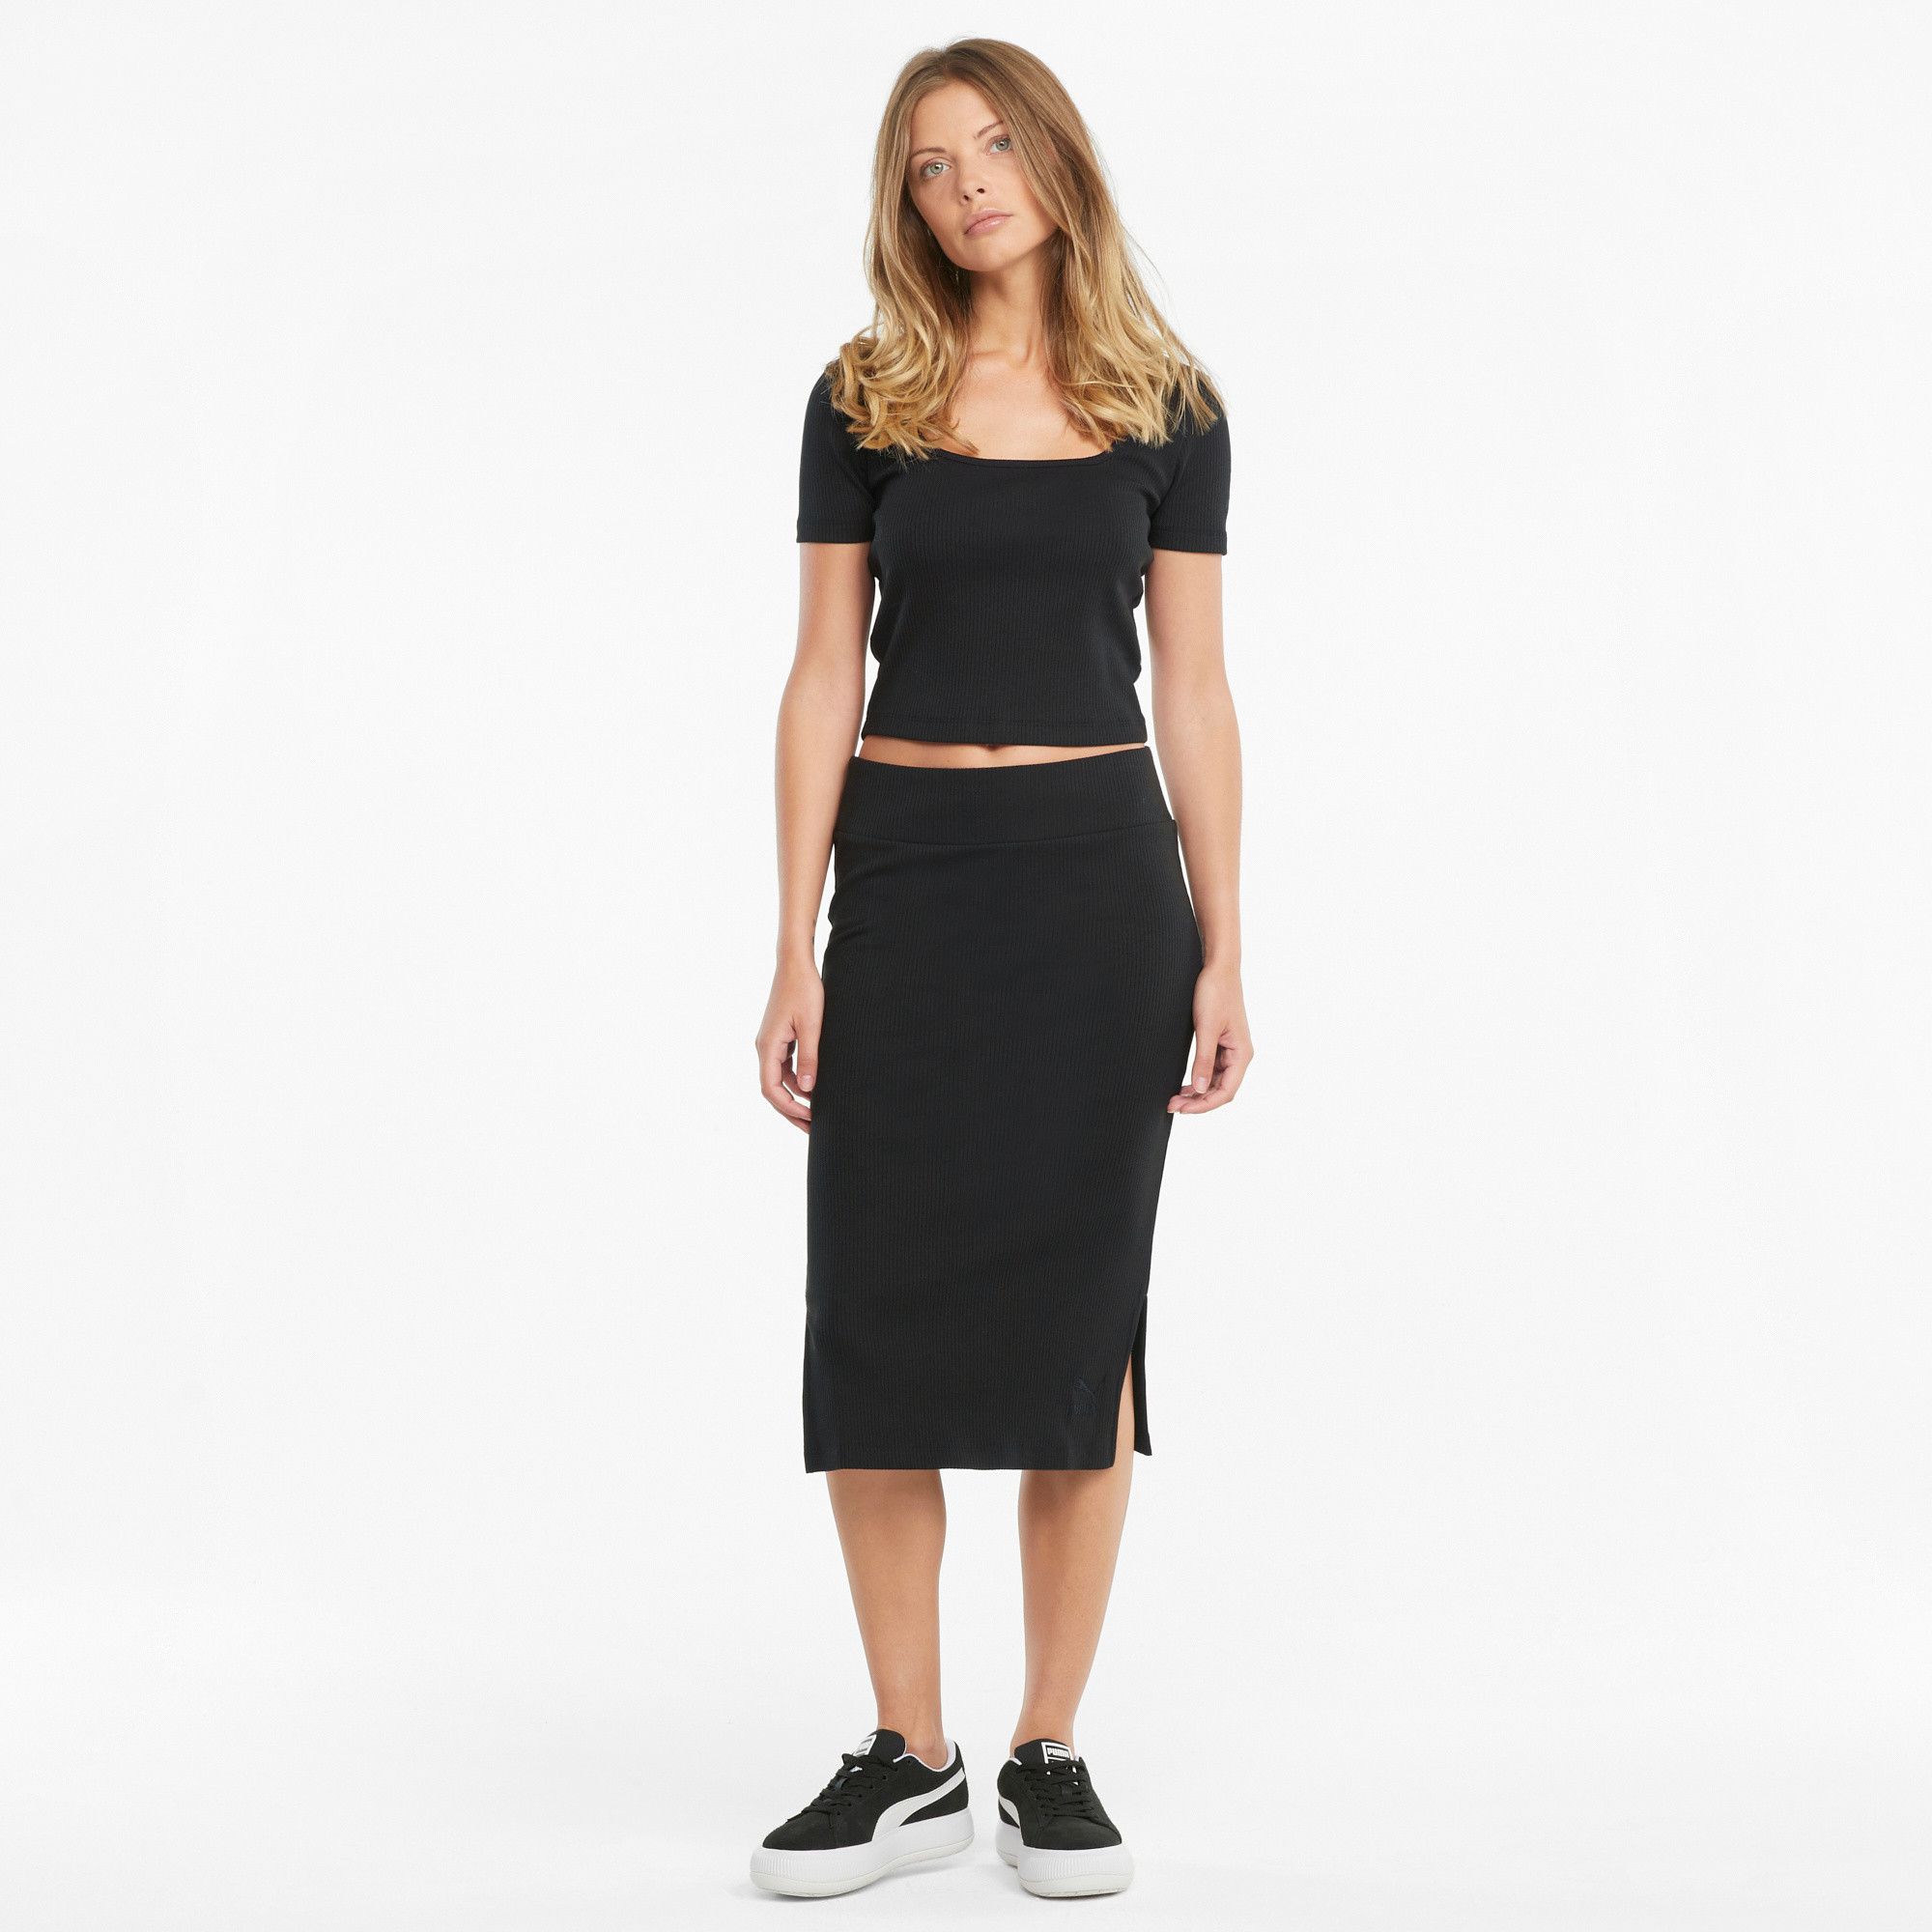 Gonna sportiva midi a coste Classics Collection, Nero, large image number 5